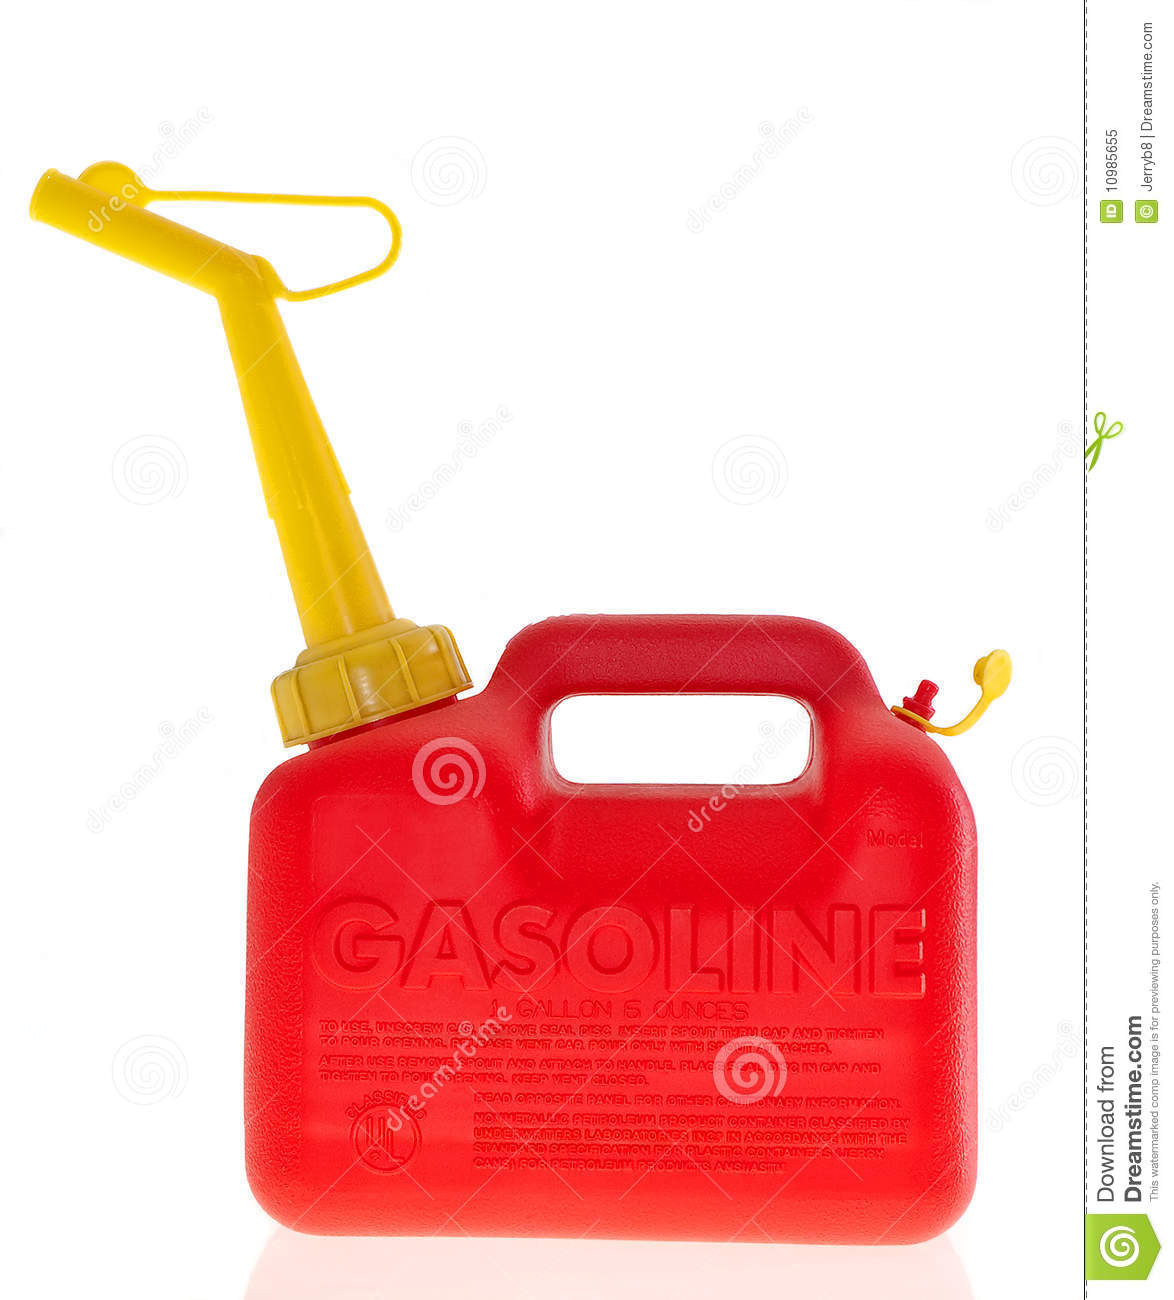 Plastic Gas Cans >> Plastic Red Gas Can Stock Image Image Of Unleaded Plastic 10985655